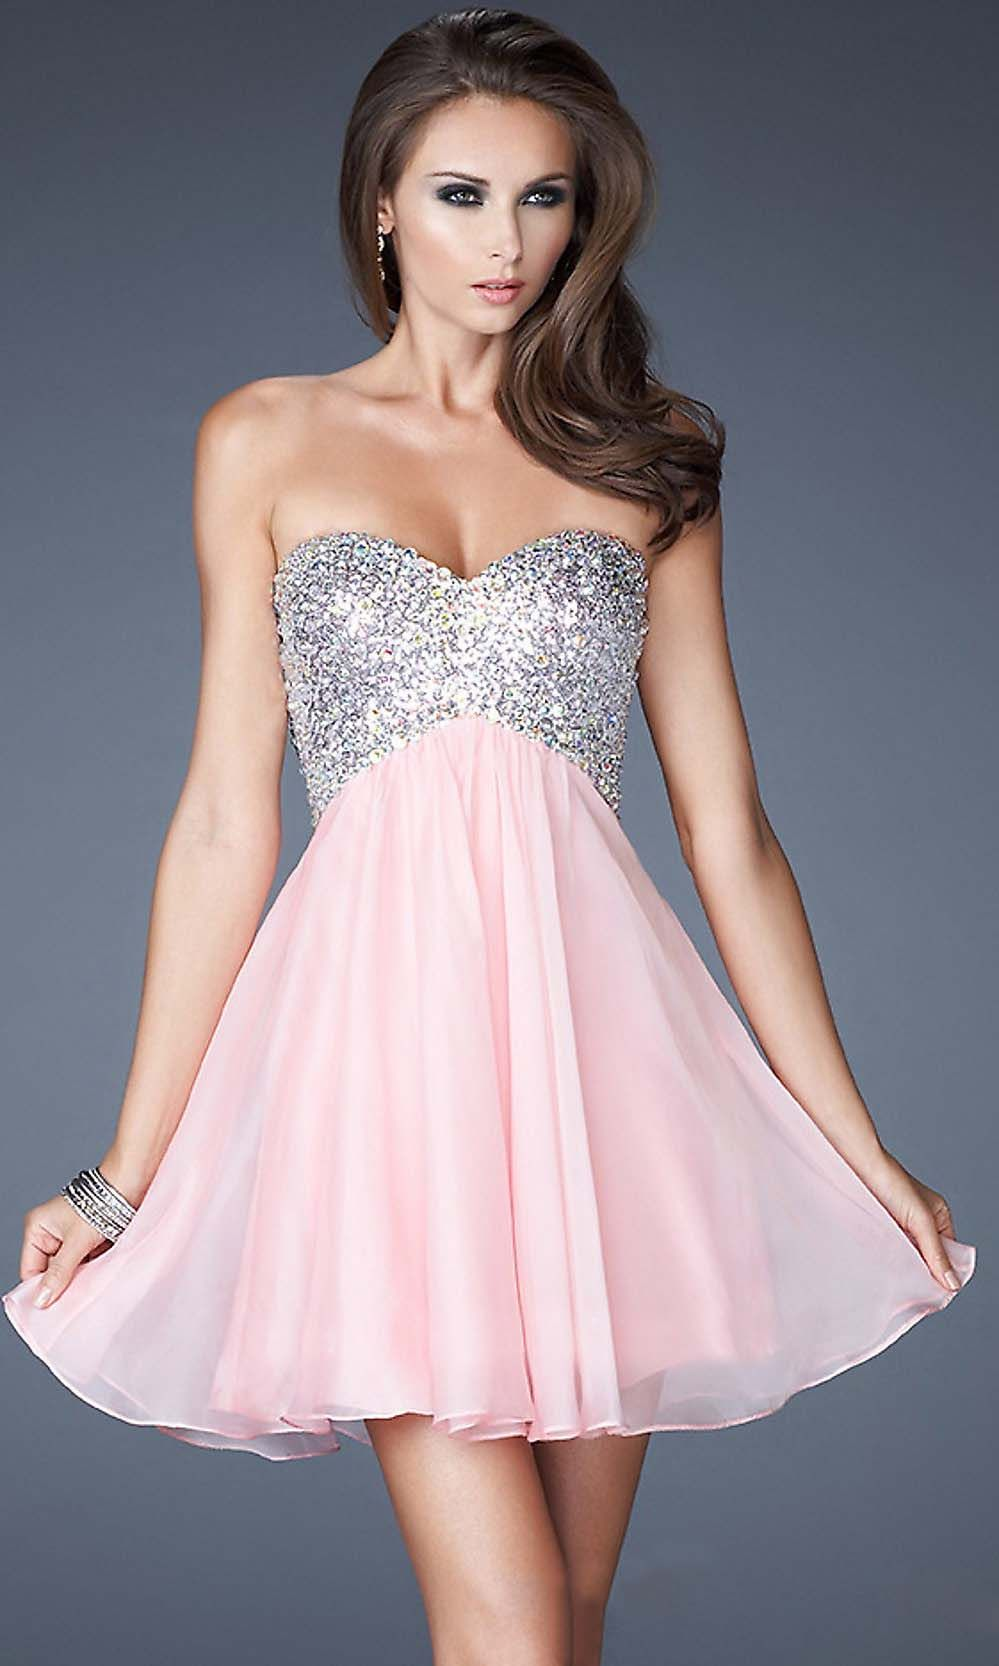 Tips for choosing junior prom dresses dresses pinterest prom cheap prom dresses ombrellifo Image collections